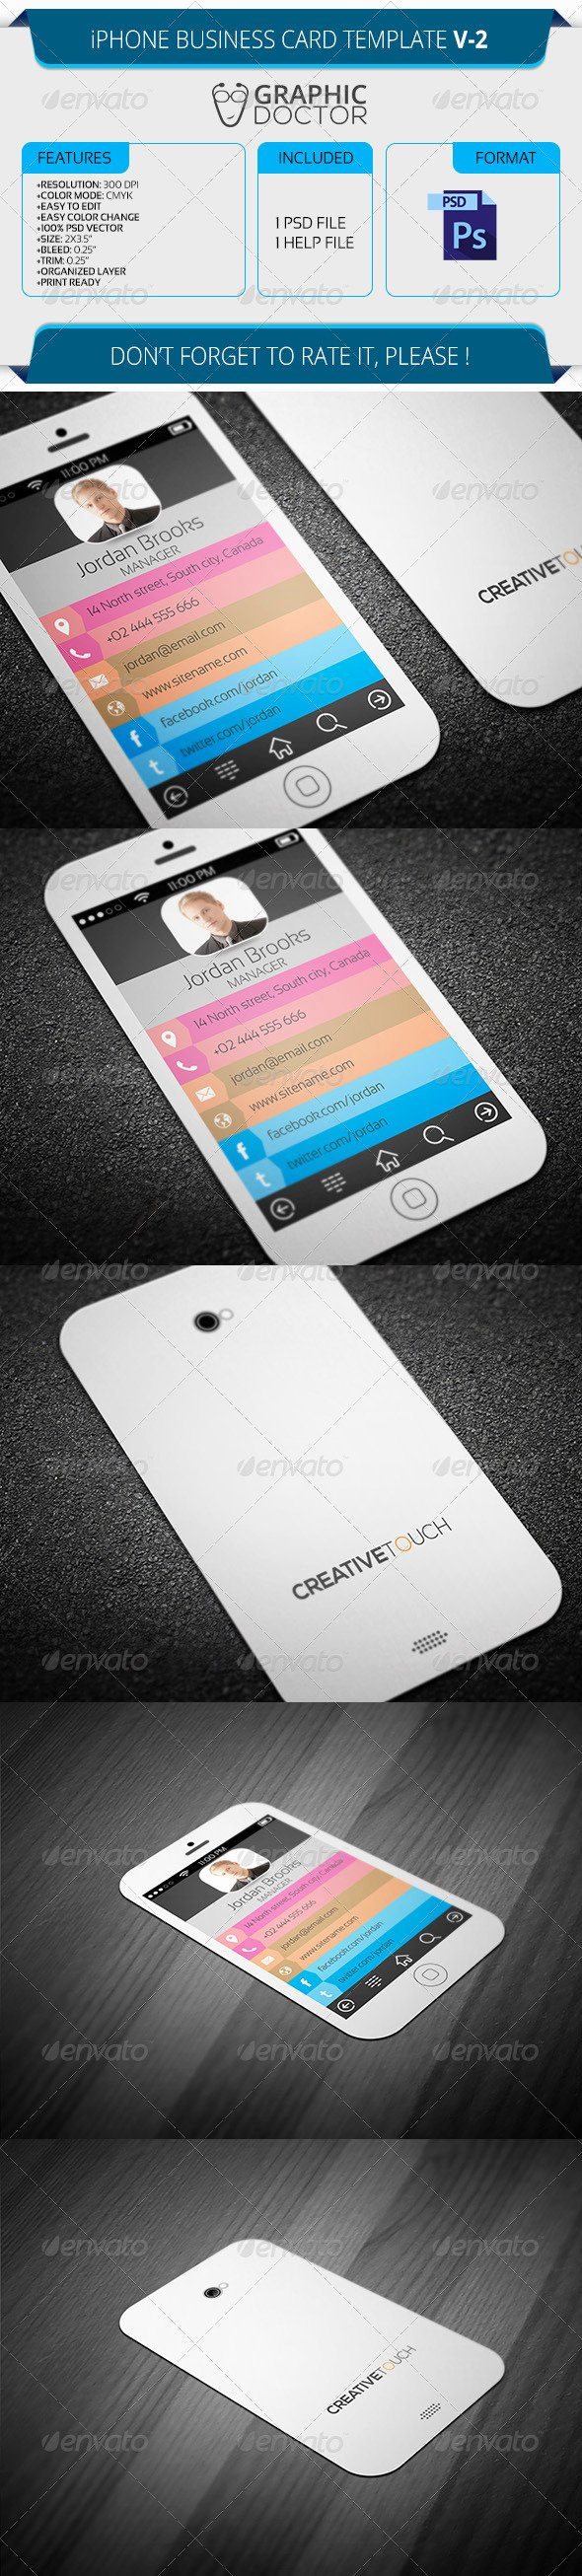 iPhone Business Card Template Awesome iPhone Business Card Template V 2